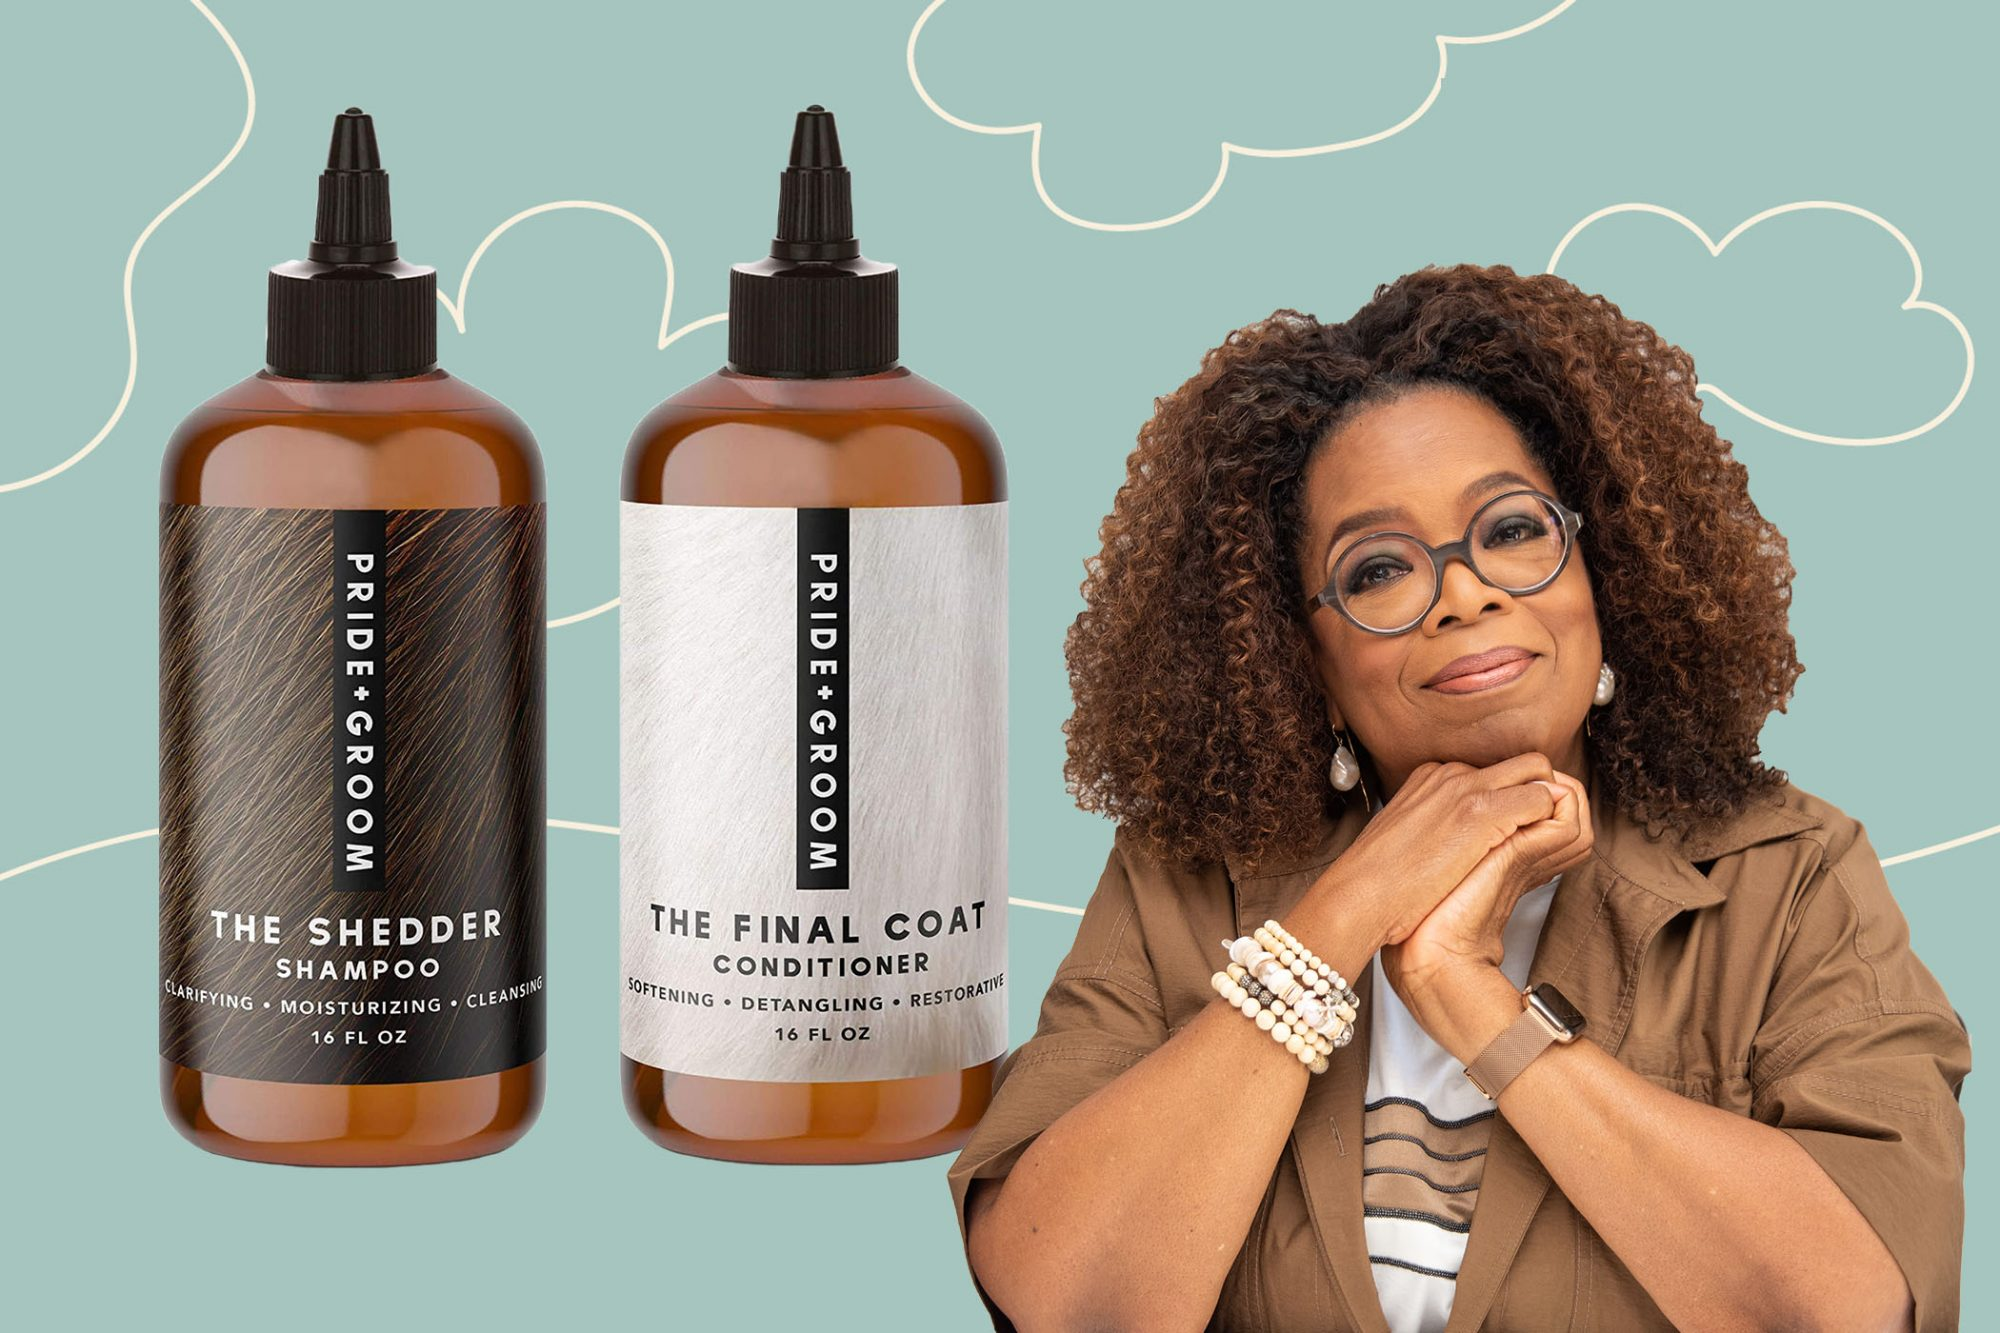 Oprah's favorite shampoo and conditioner for pets